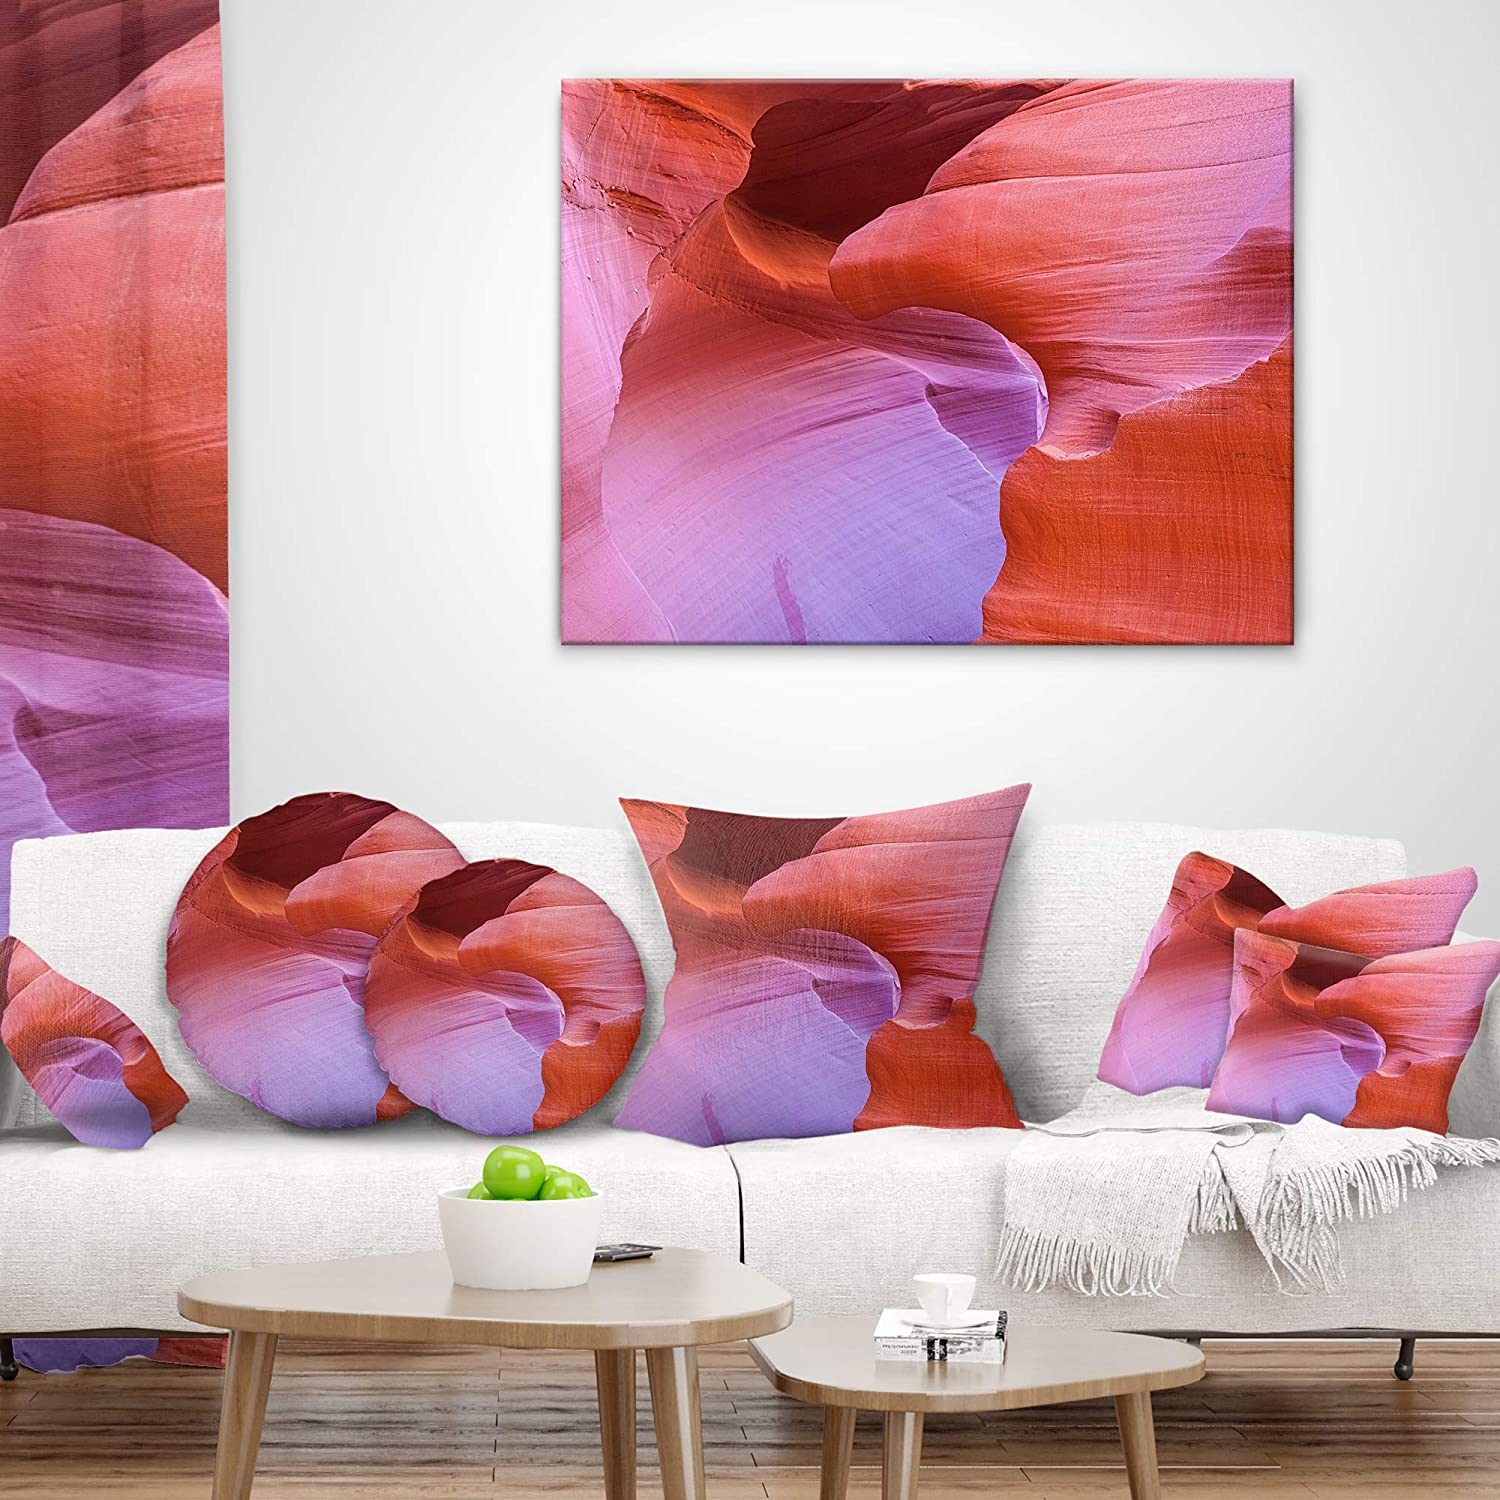 Sofa Throw Pillow 20 Insert Printed On Both Side Designart CU8801-20-20-C Antelope Canyon Landscape Photography Round Cushion Cover for Living Room